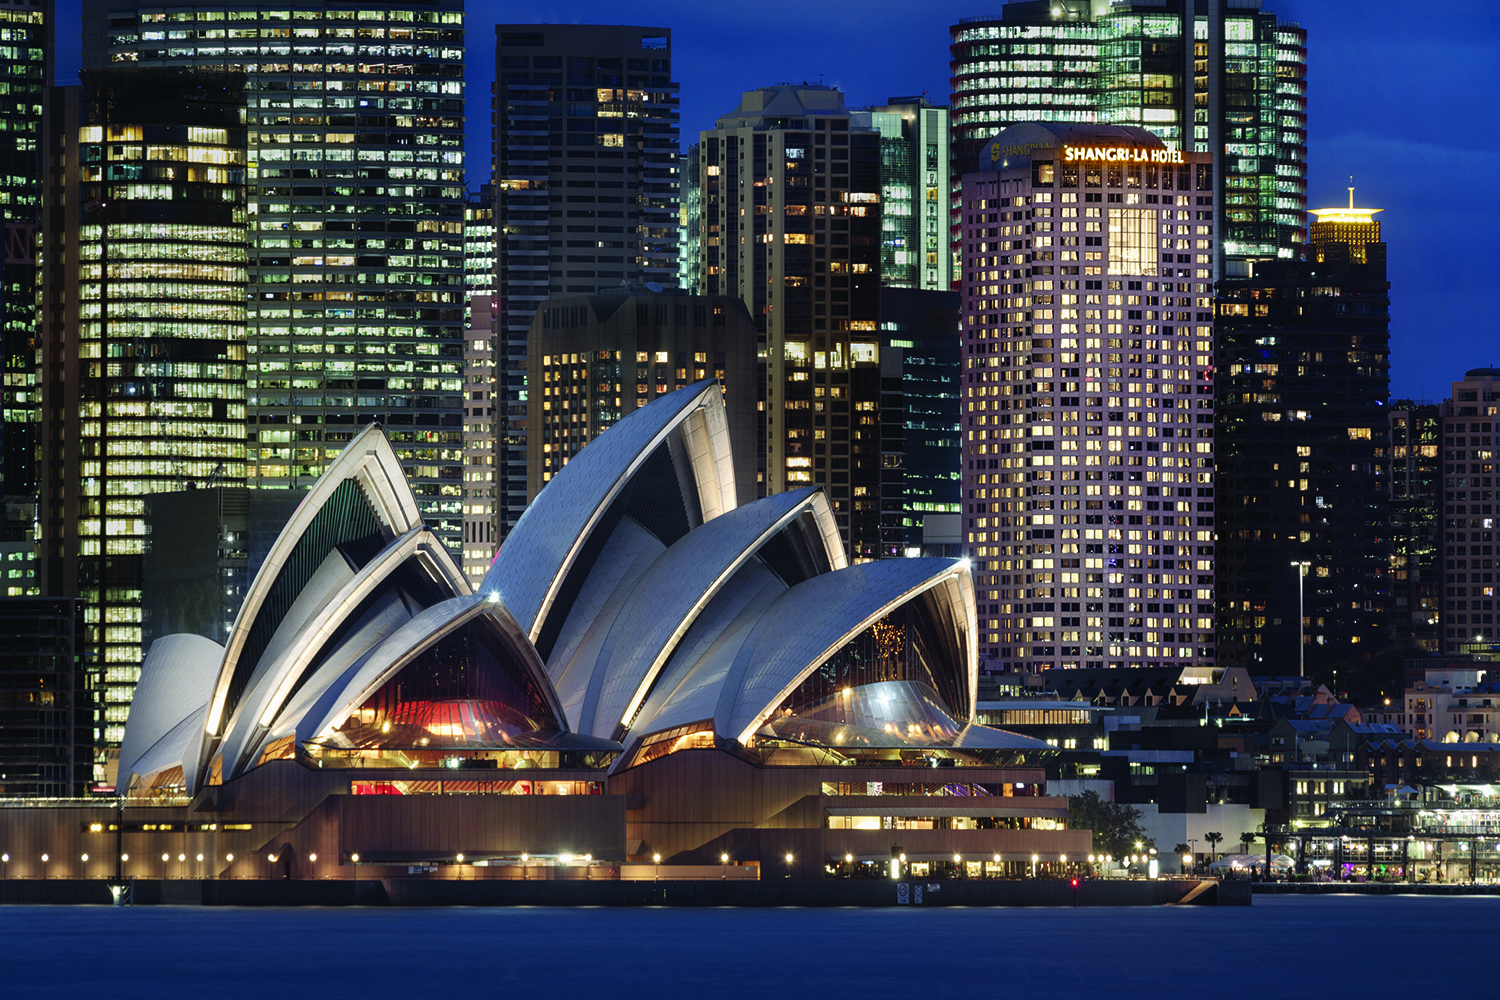 Shangri-La Hotel, Sydney is located in the historic Rocks District within close proximity to the Sydney Opera House and Harbour Bridge.